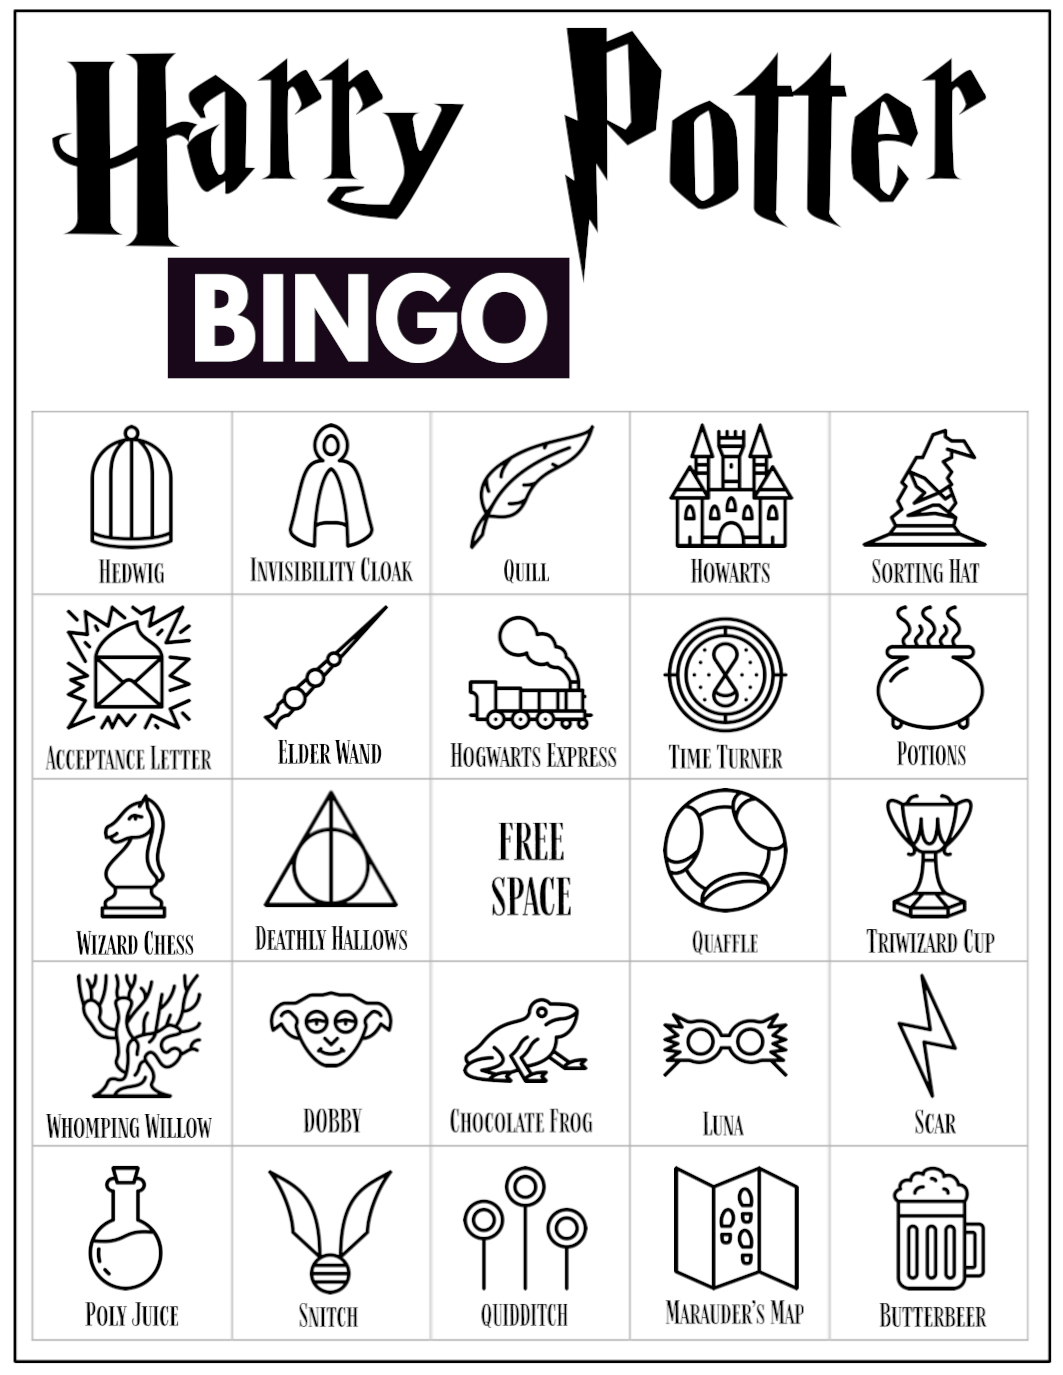 photograph about Free Printable Harry Potter Birthday Cards called No cost Printable Harry Potter Bingo Sport - Paper Path Structure